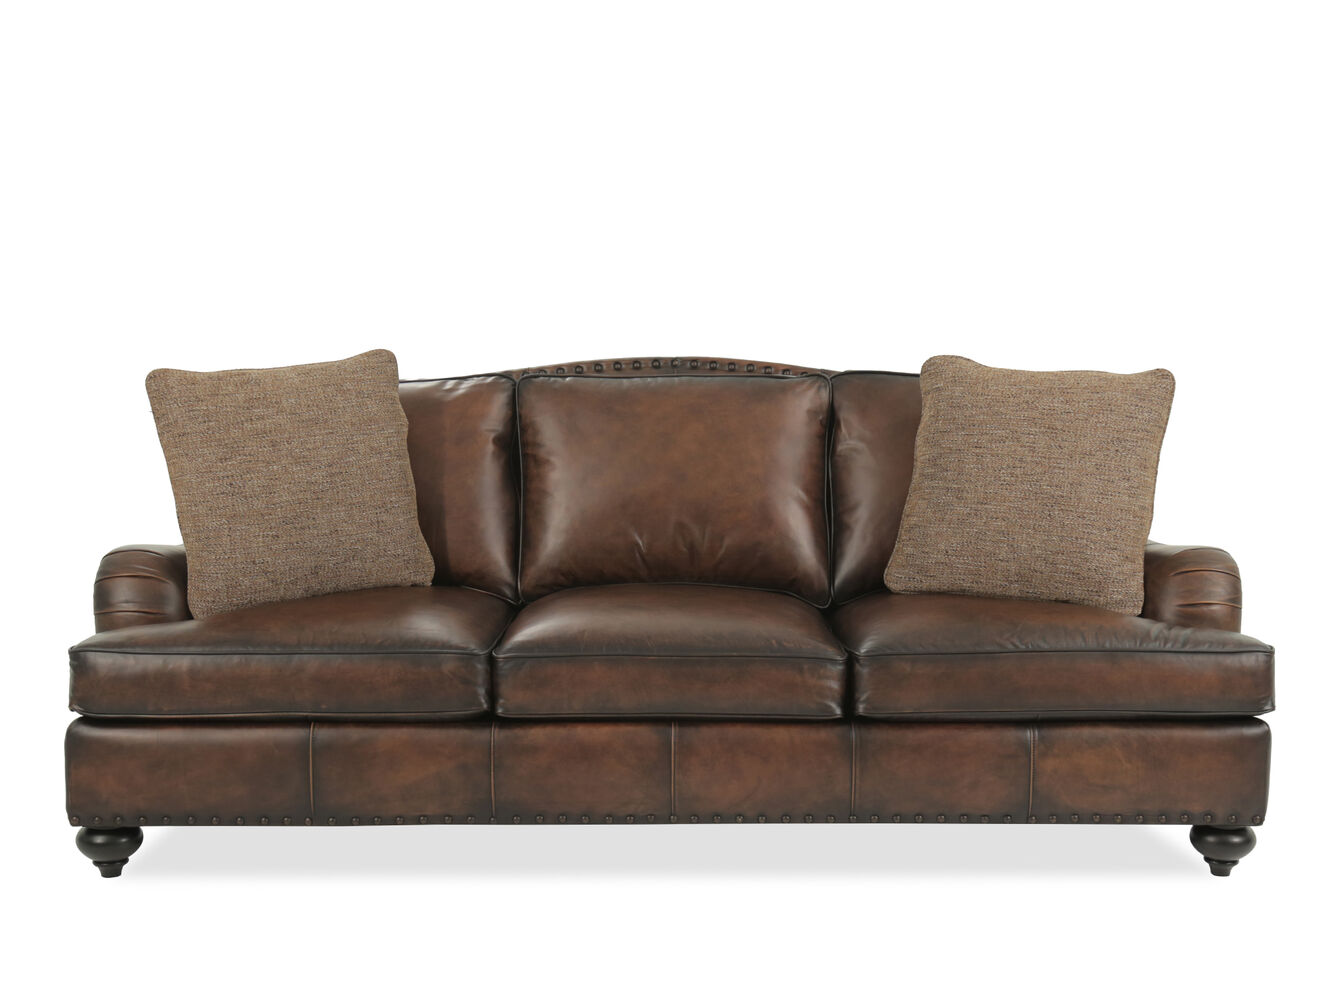 Bernhardt fulham leather sofa mathis brothers furniture for Bernhardt furniture